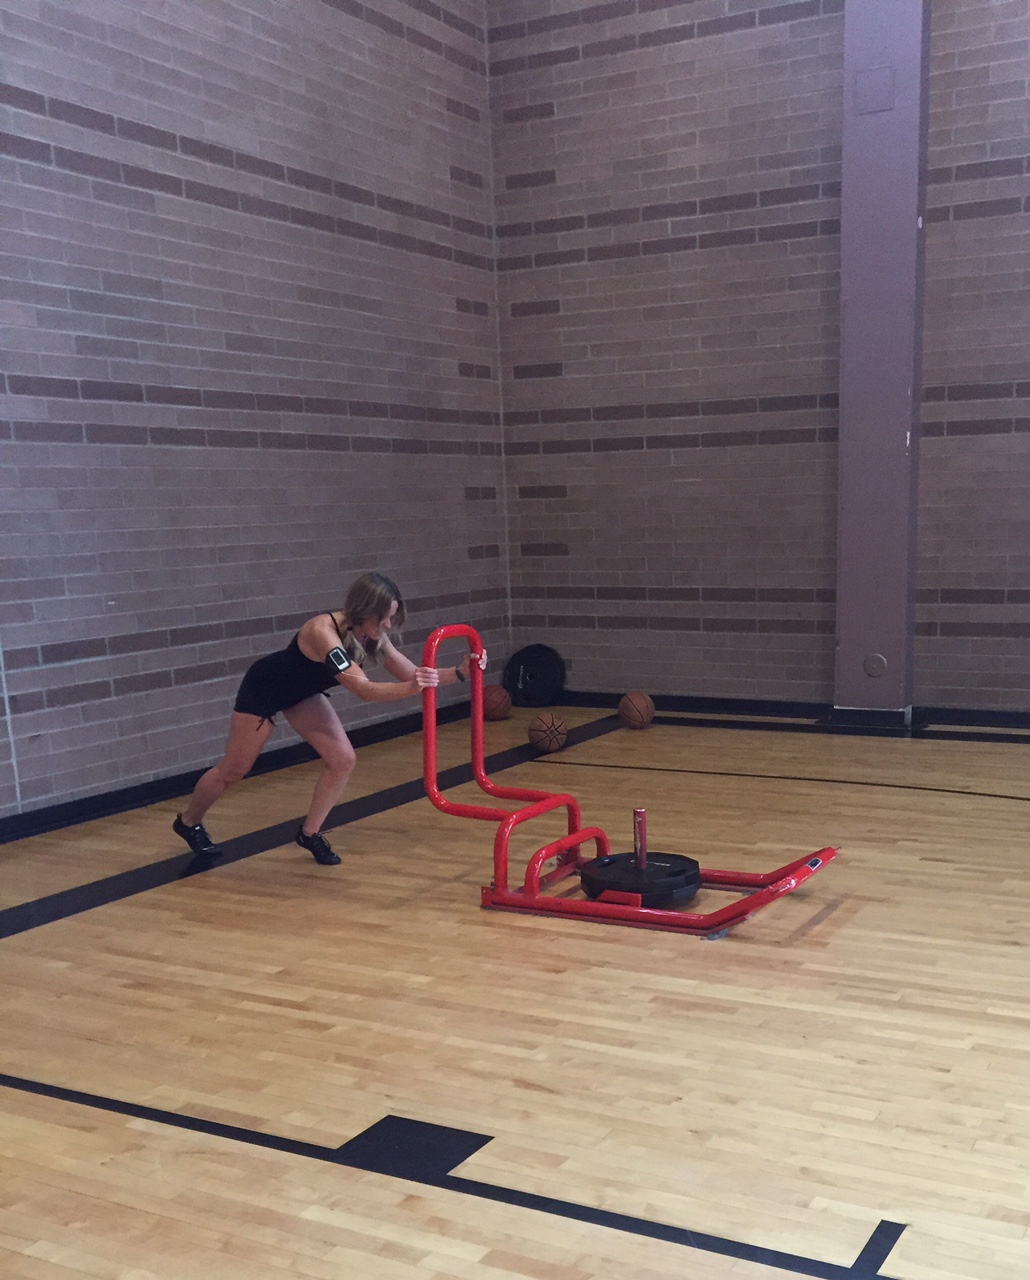 Sled Push with 90 lbs. - add in more weight to add challenge.